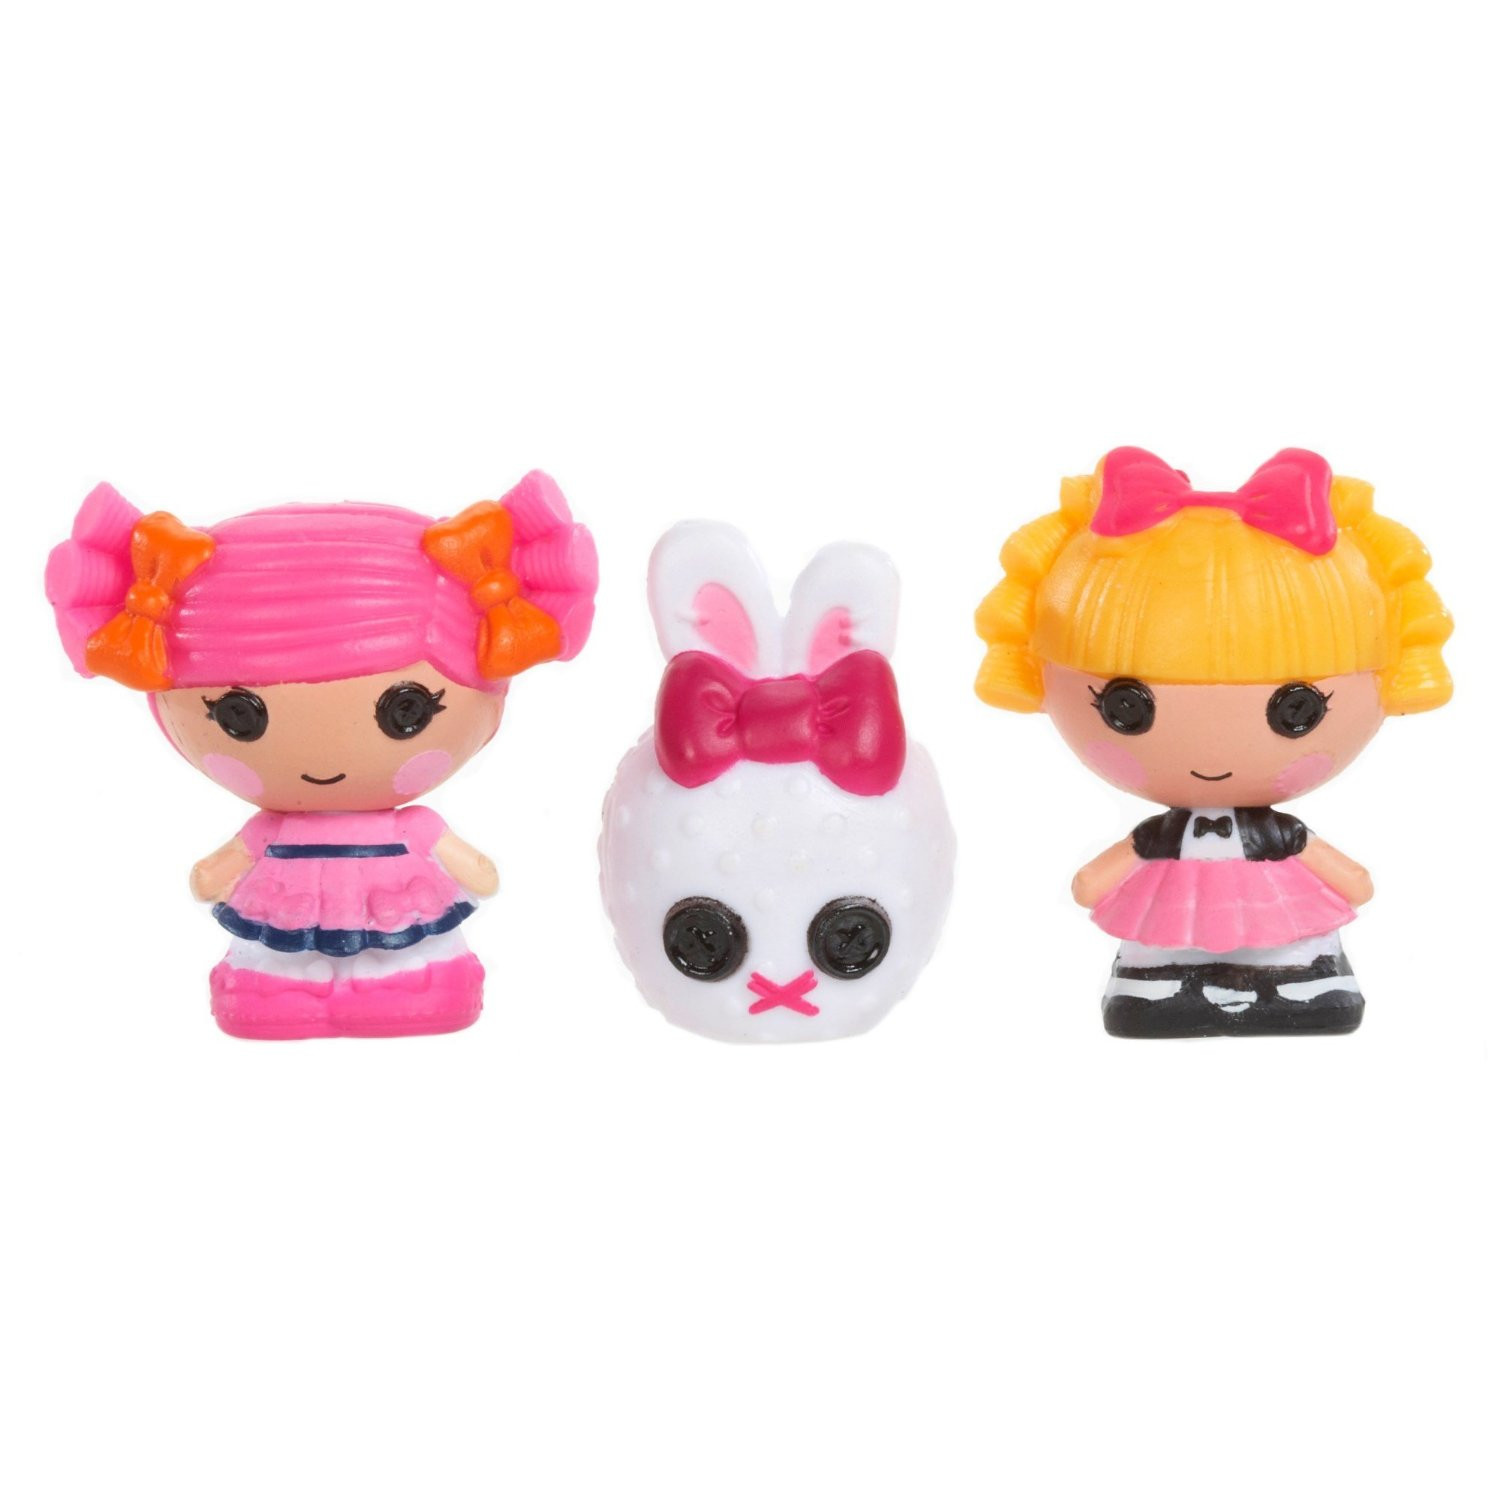 Lalaloopsy Tinies 3 Pack Assortment